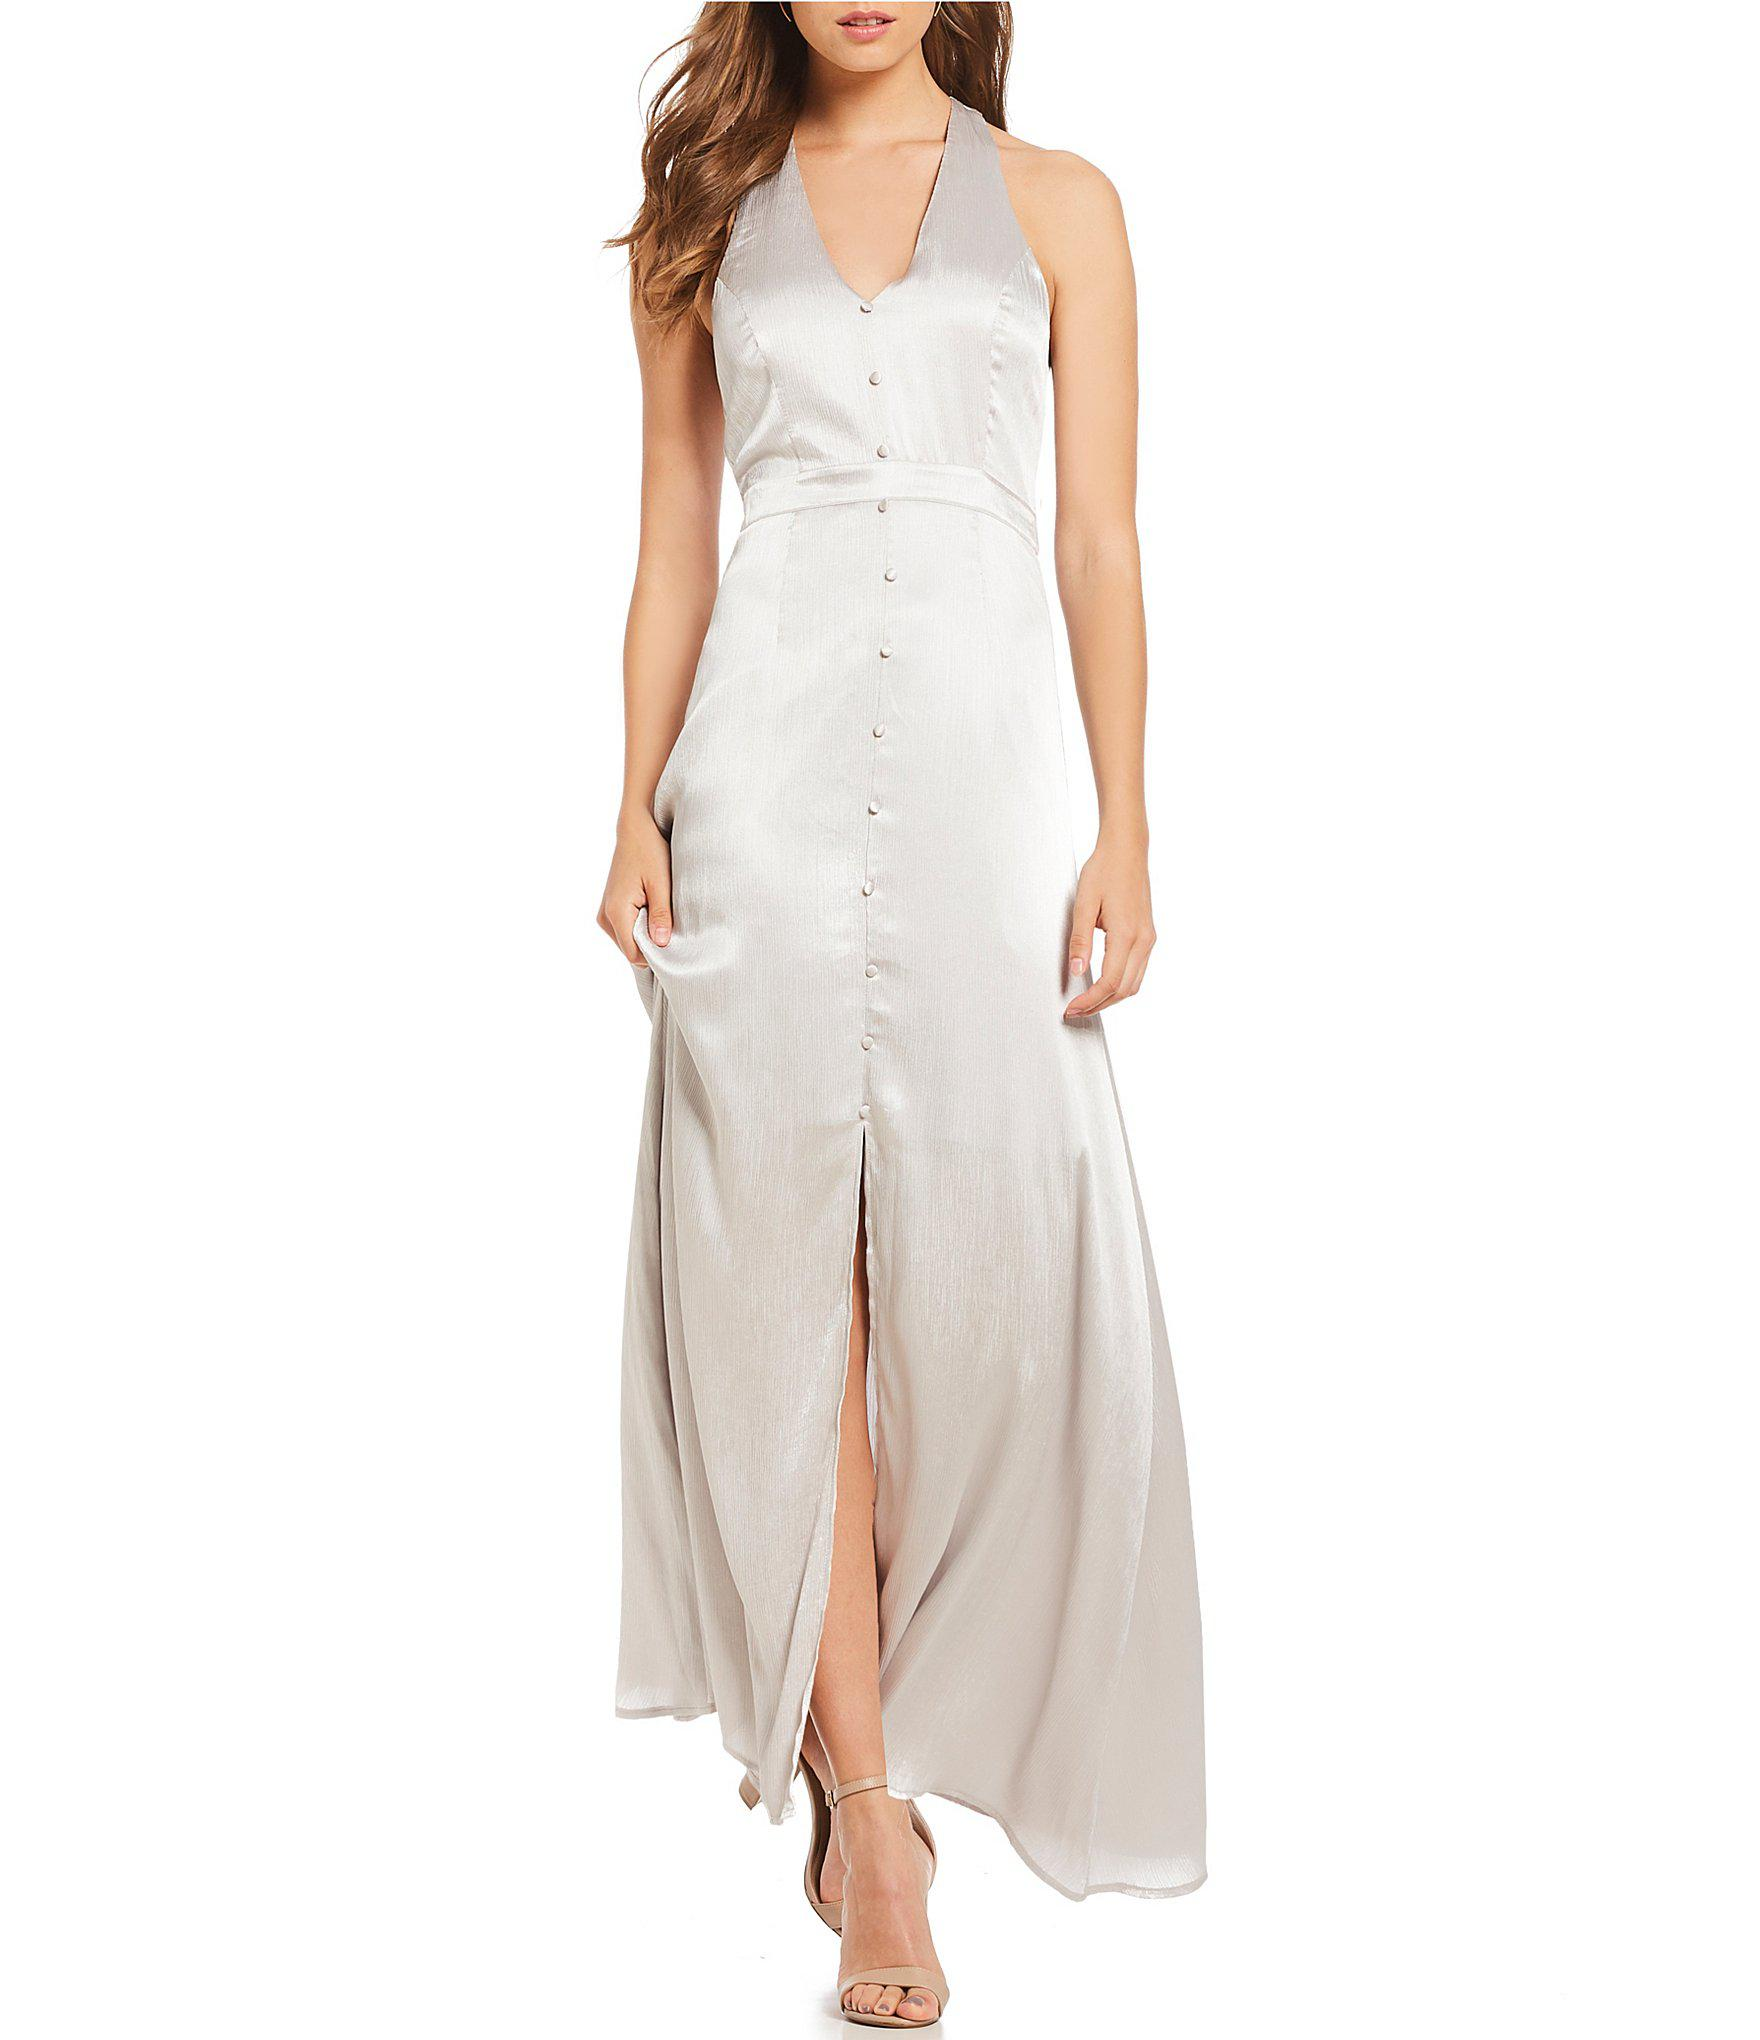 Front Button Satin Silver Dresses